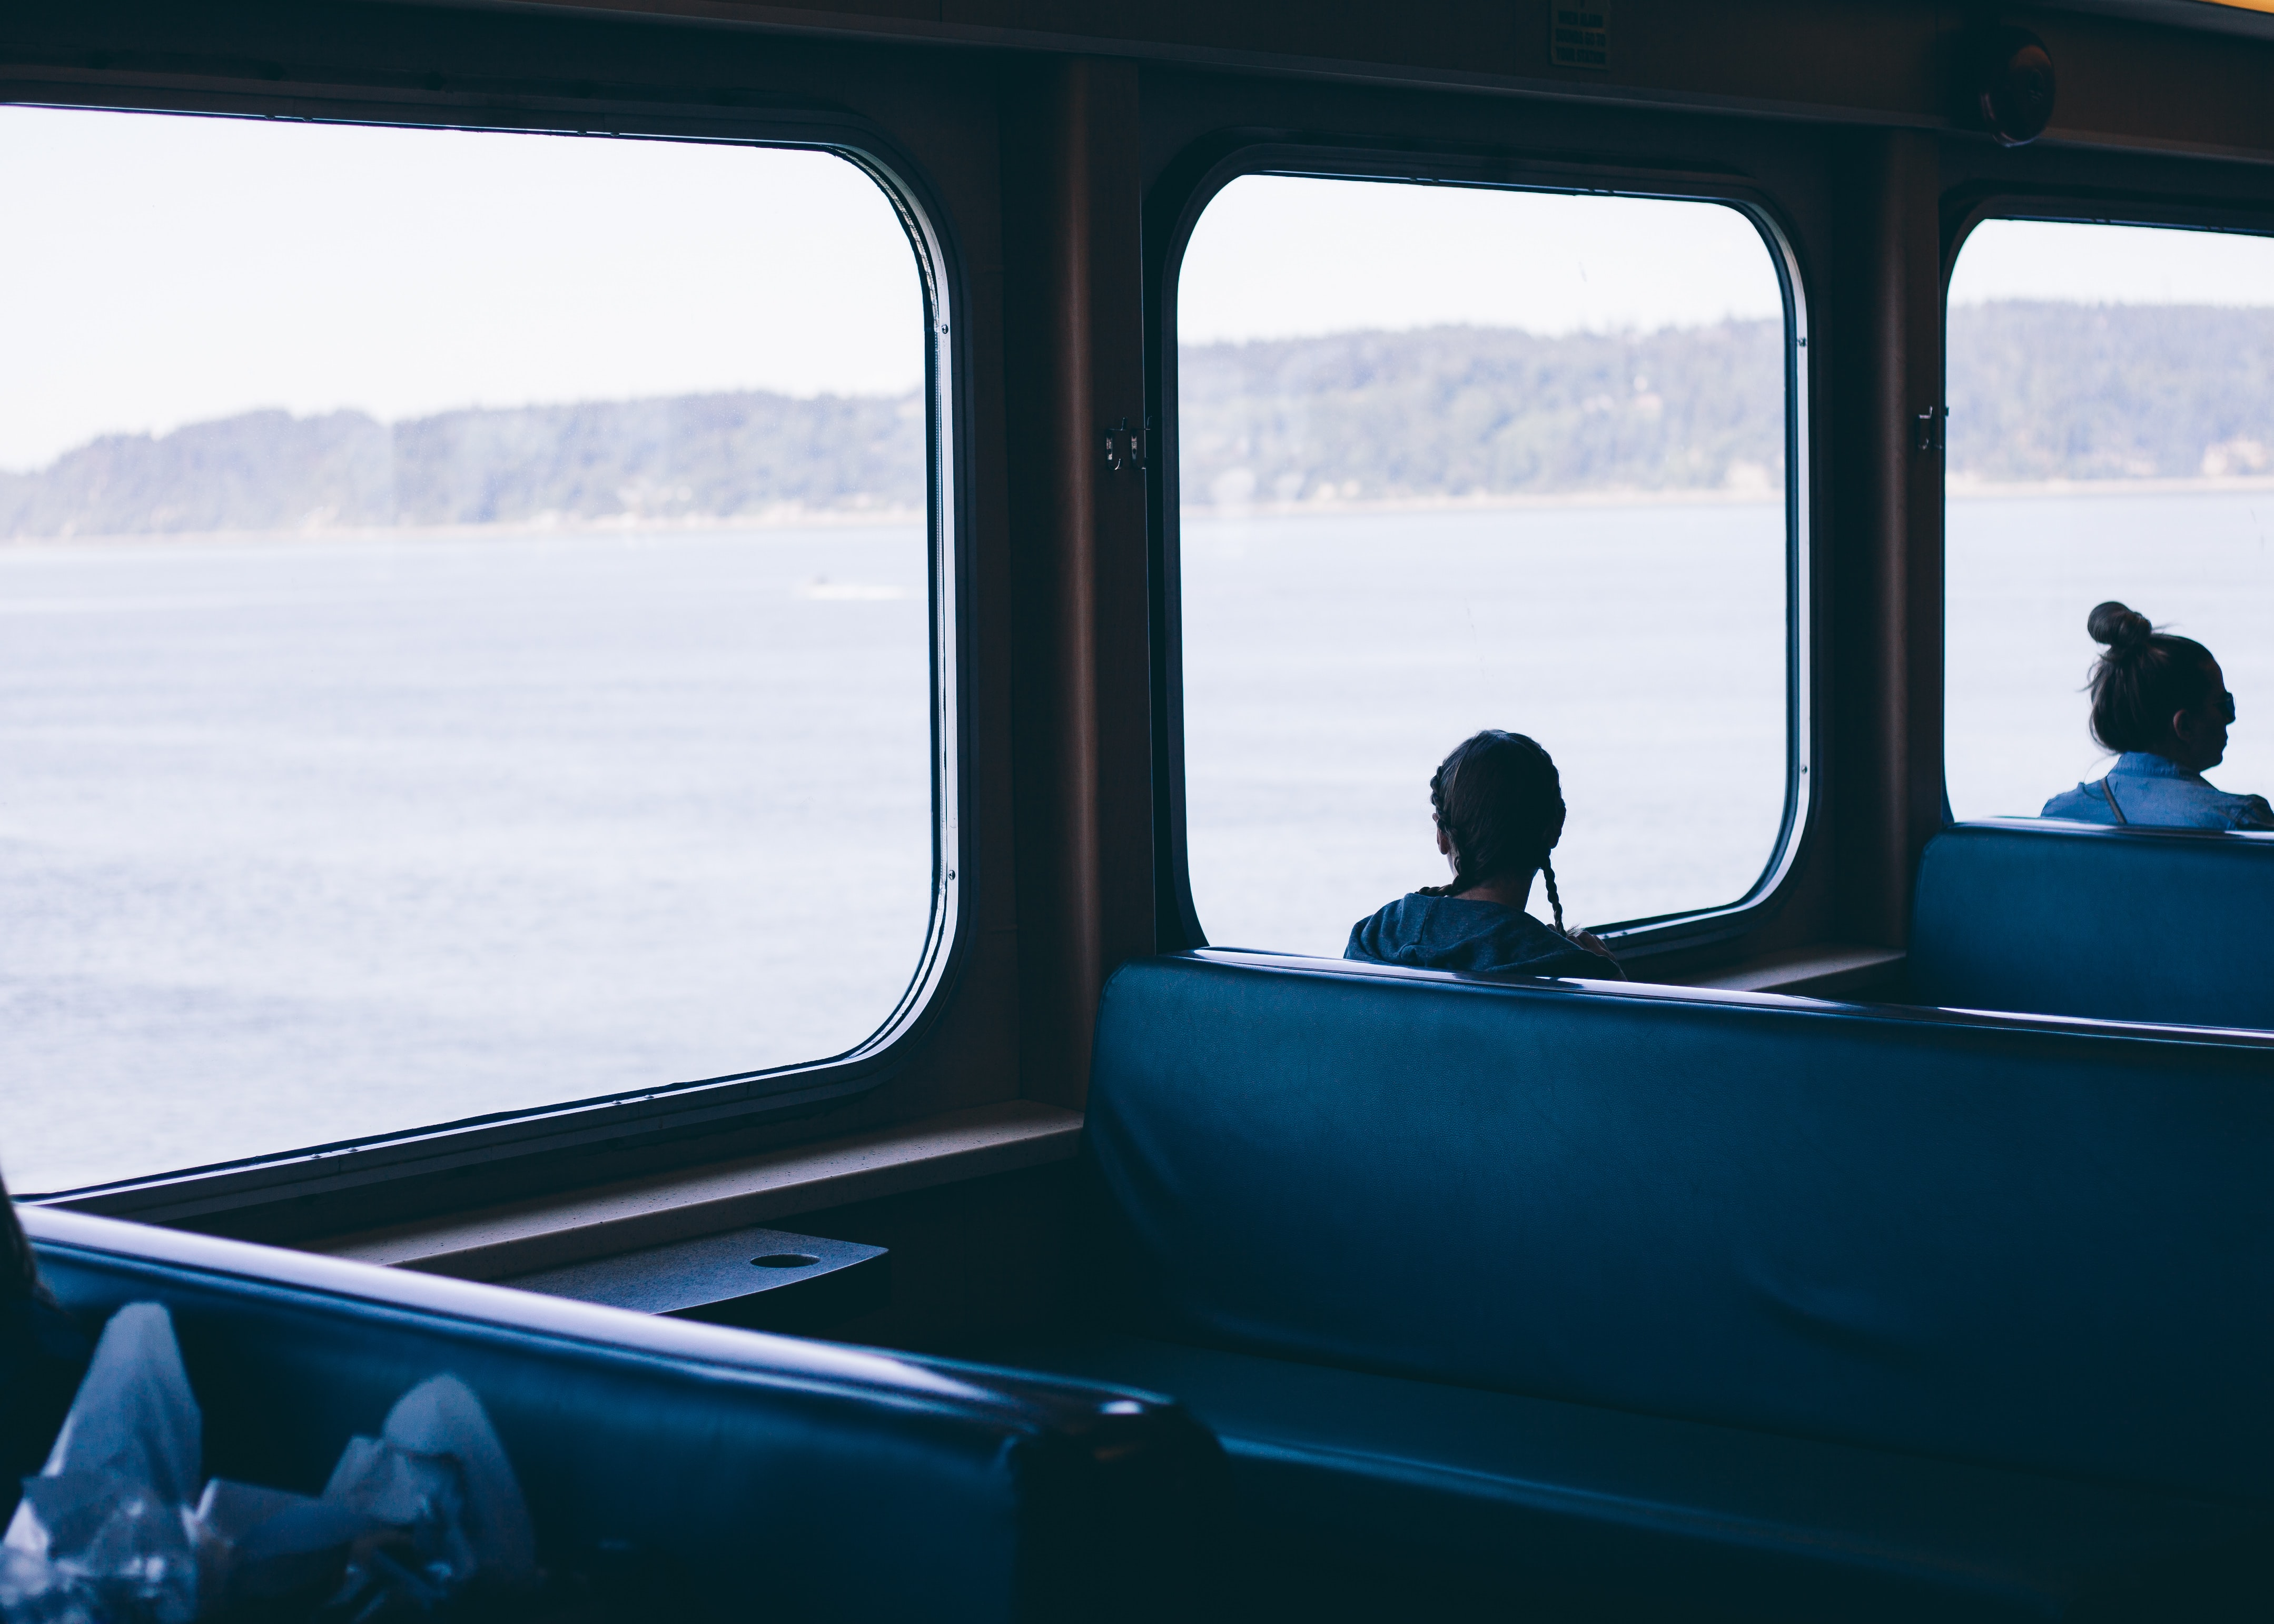 person inside boat overlooking window view